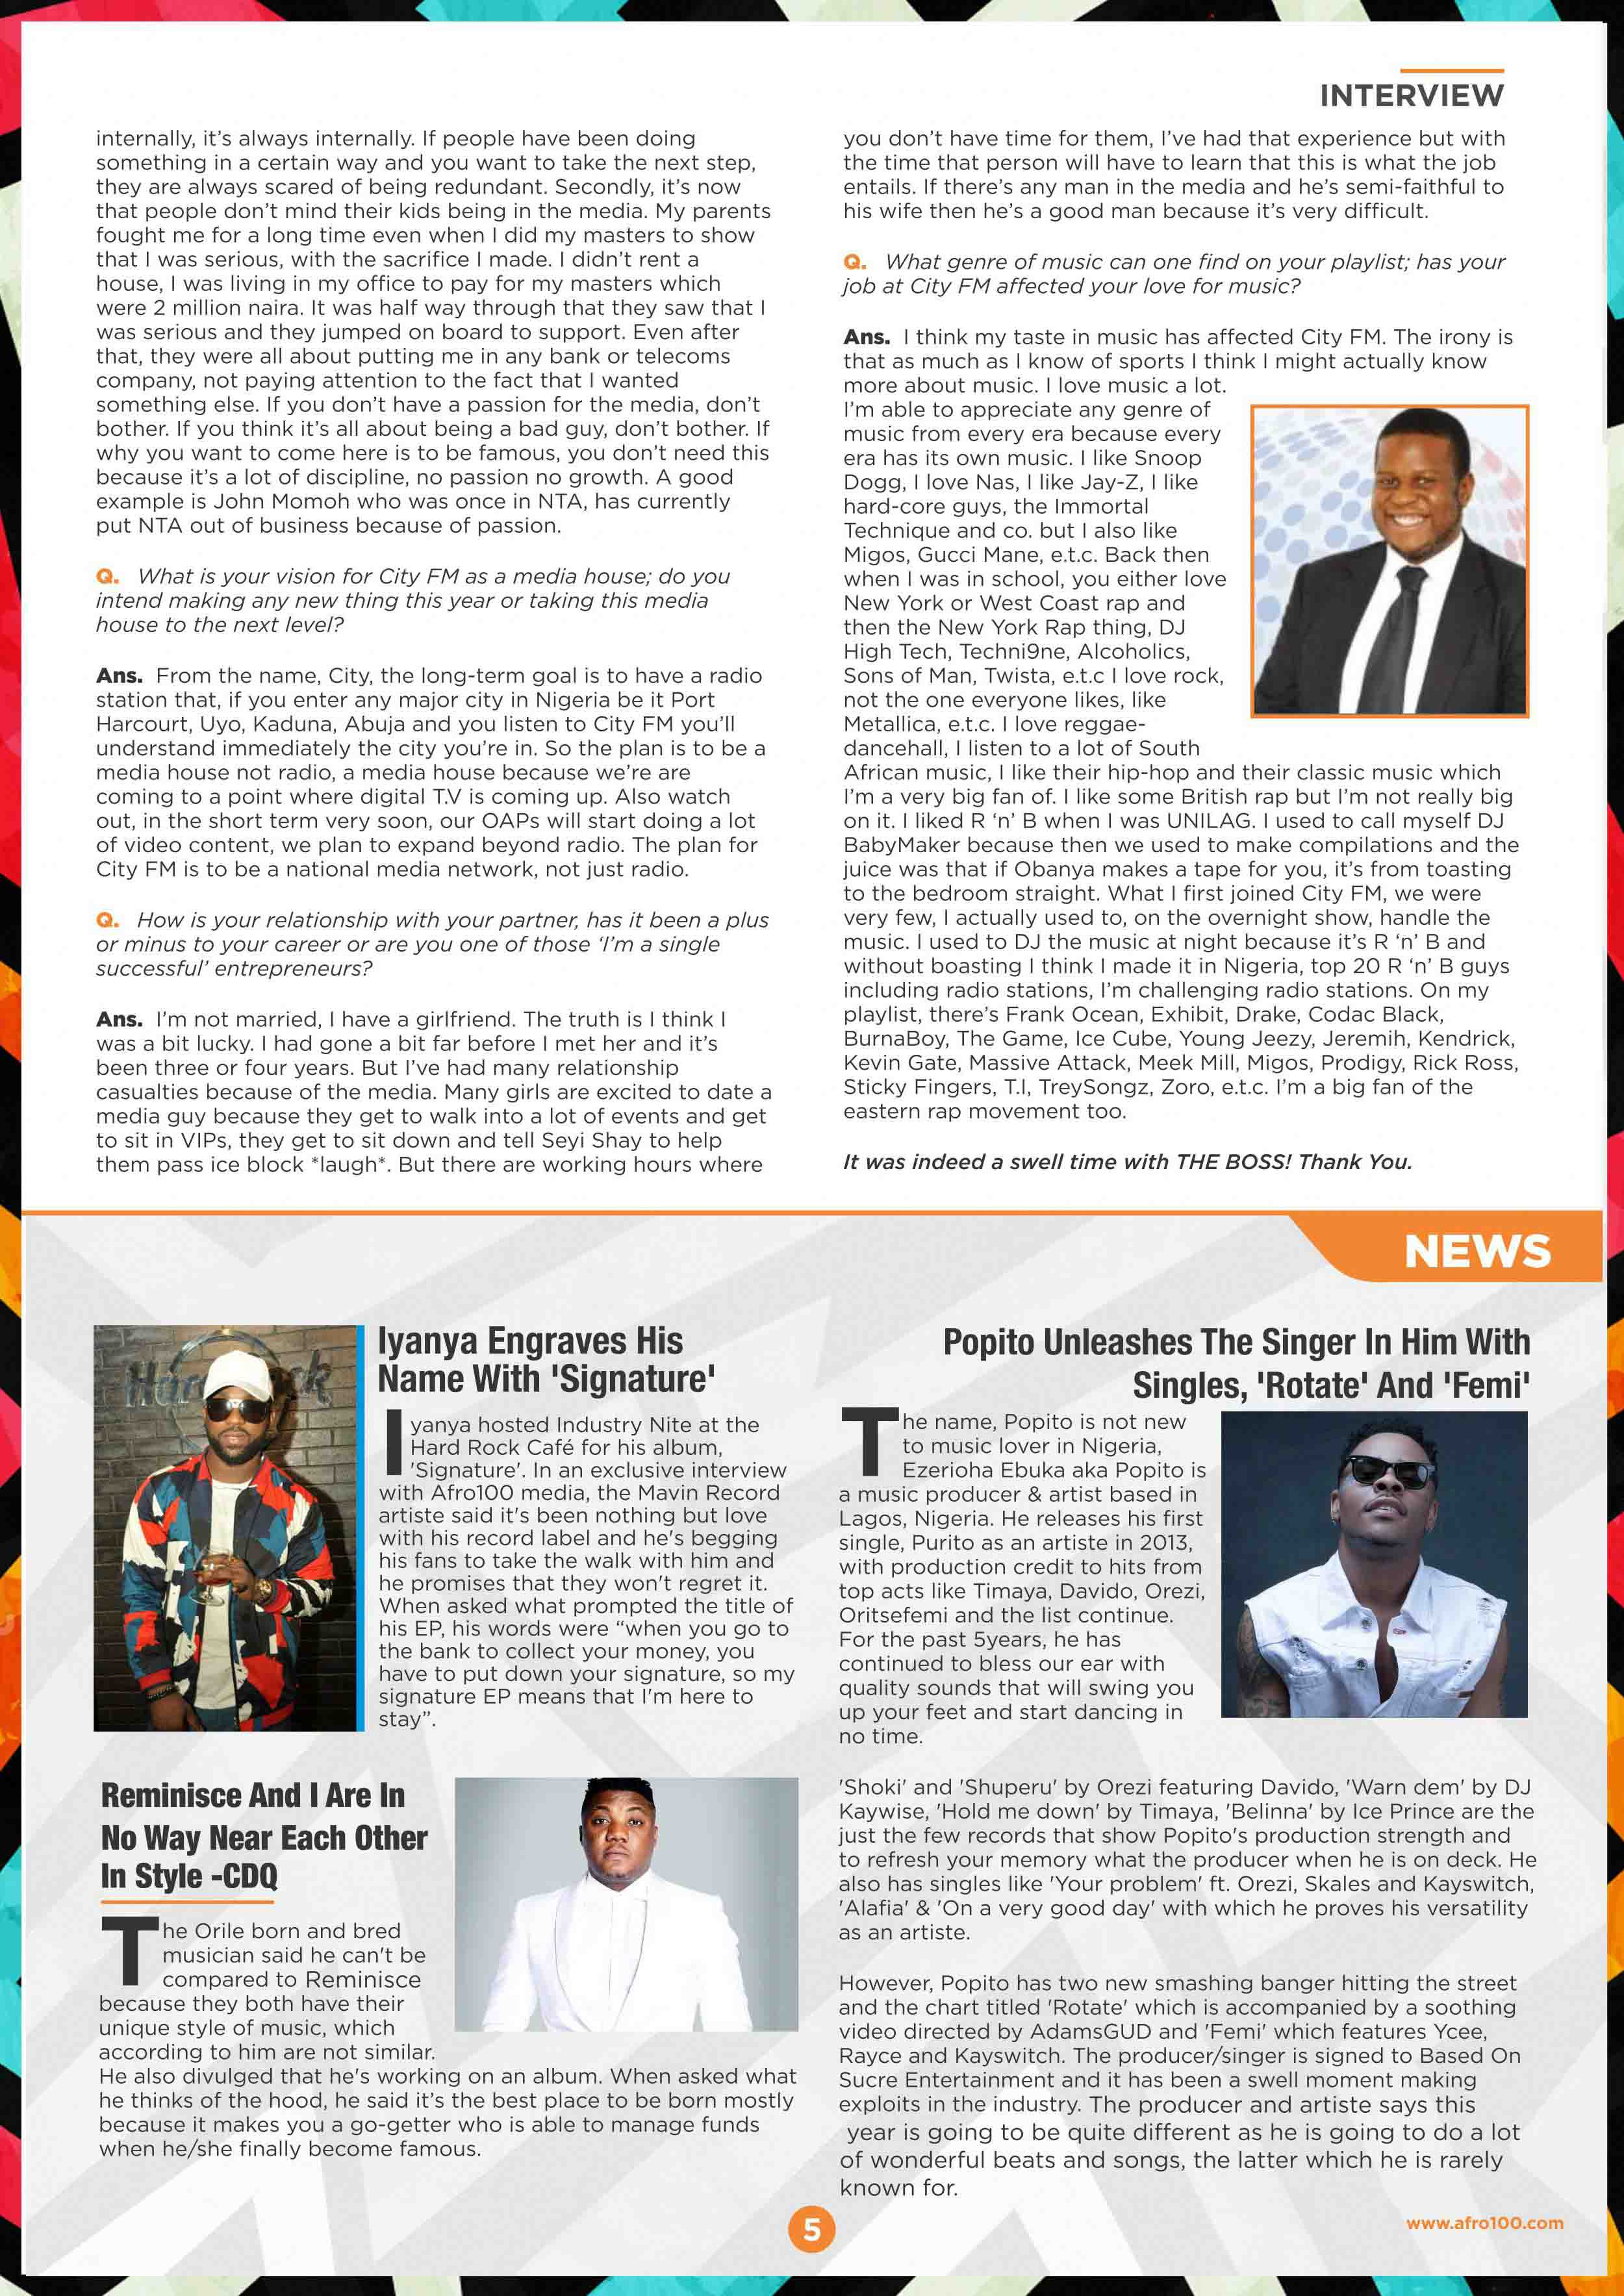 Afro100 newsletter inside page